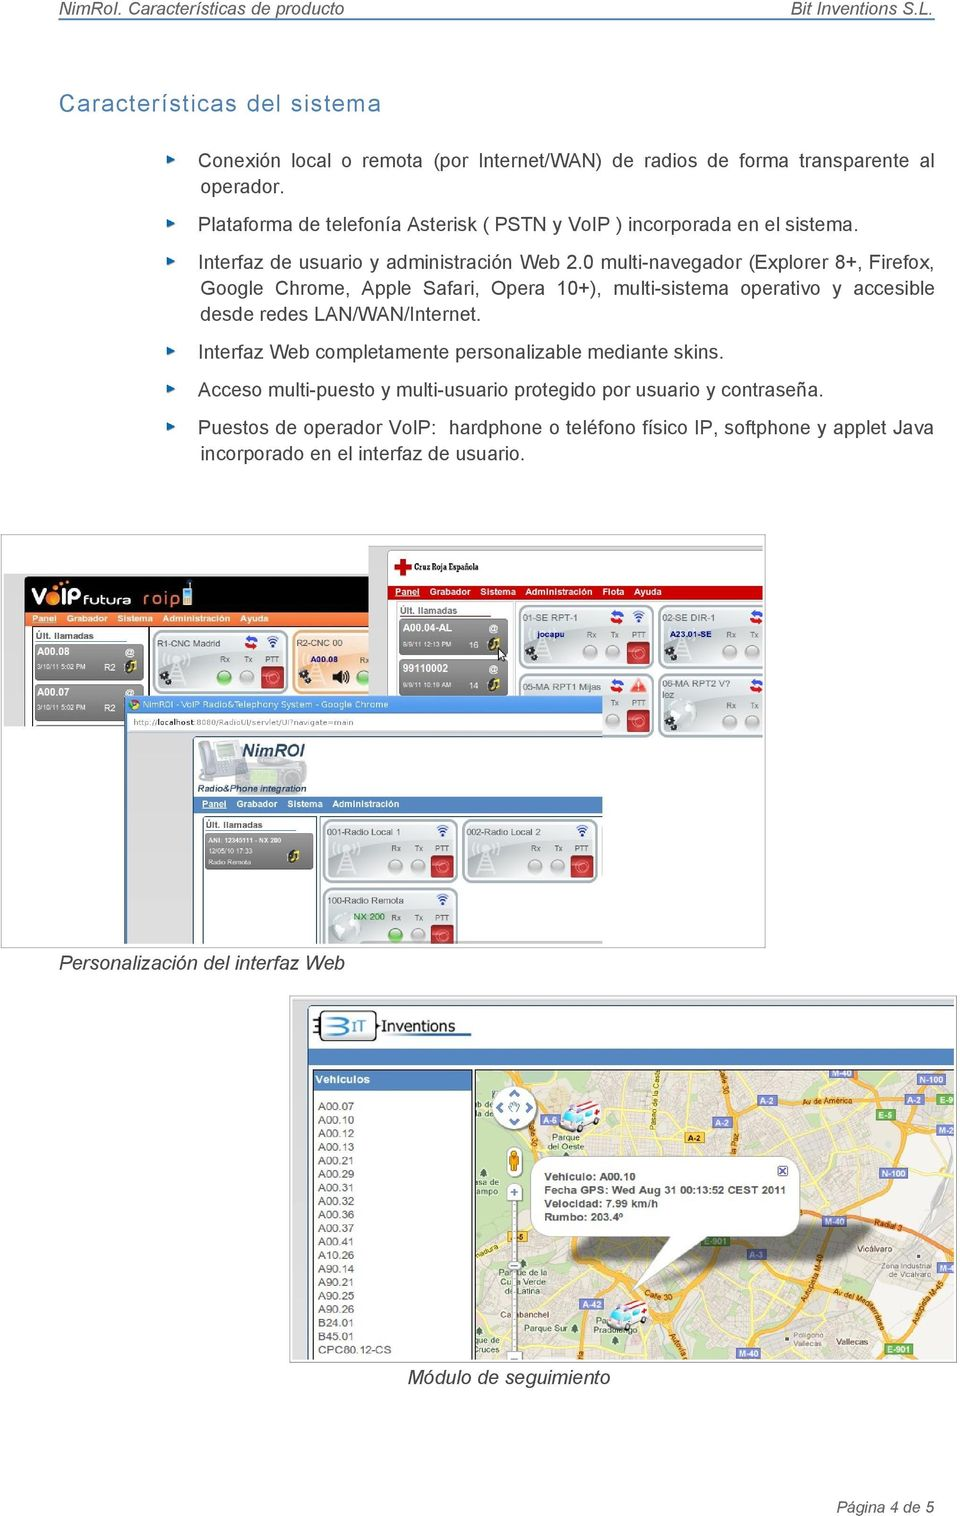 0 multi-navegador (Explorer 8+, Firefox, Google Chrome, Apple Safari, Opera 10+), multi-sistema operativo y accesible desde redes LAN/WAN/Internet.